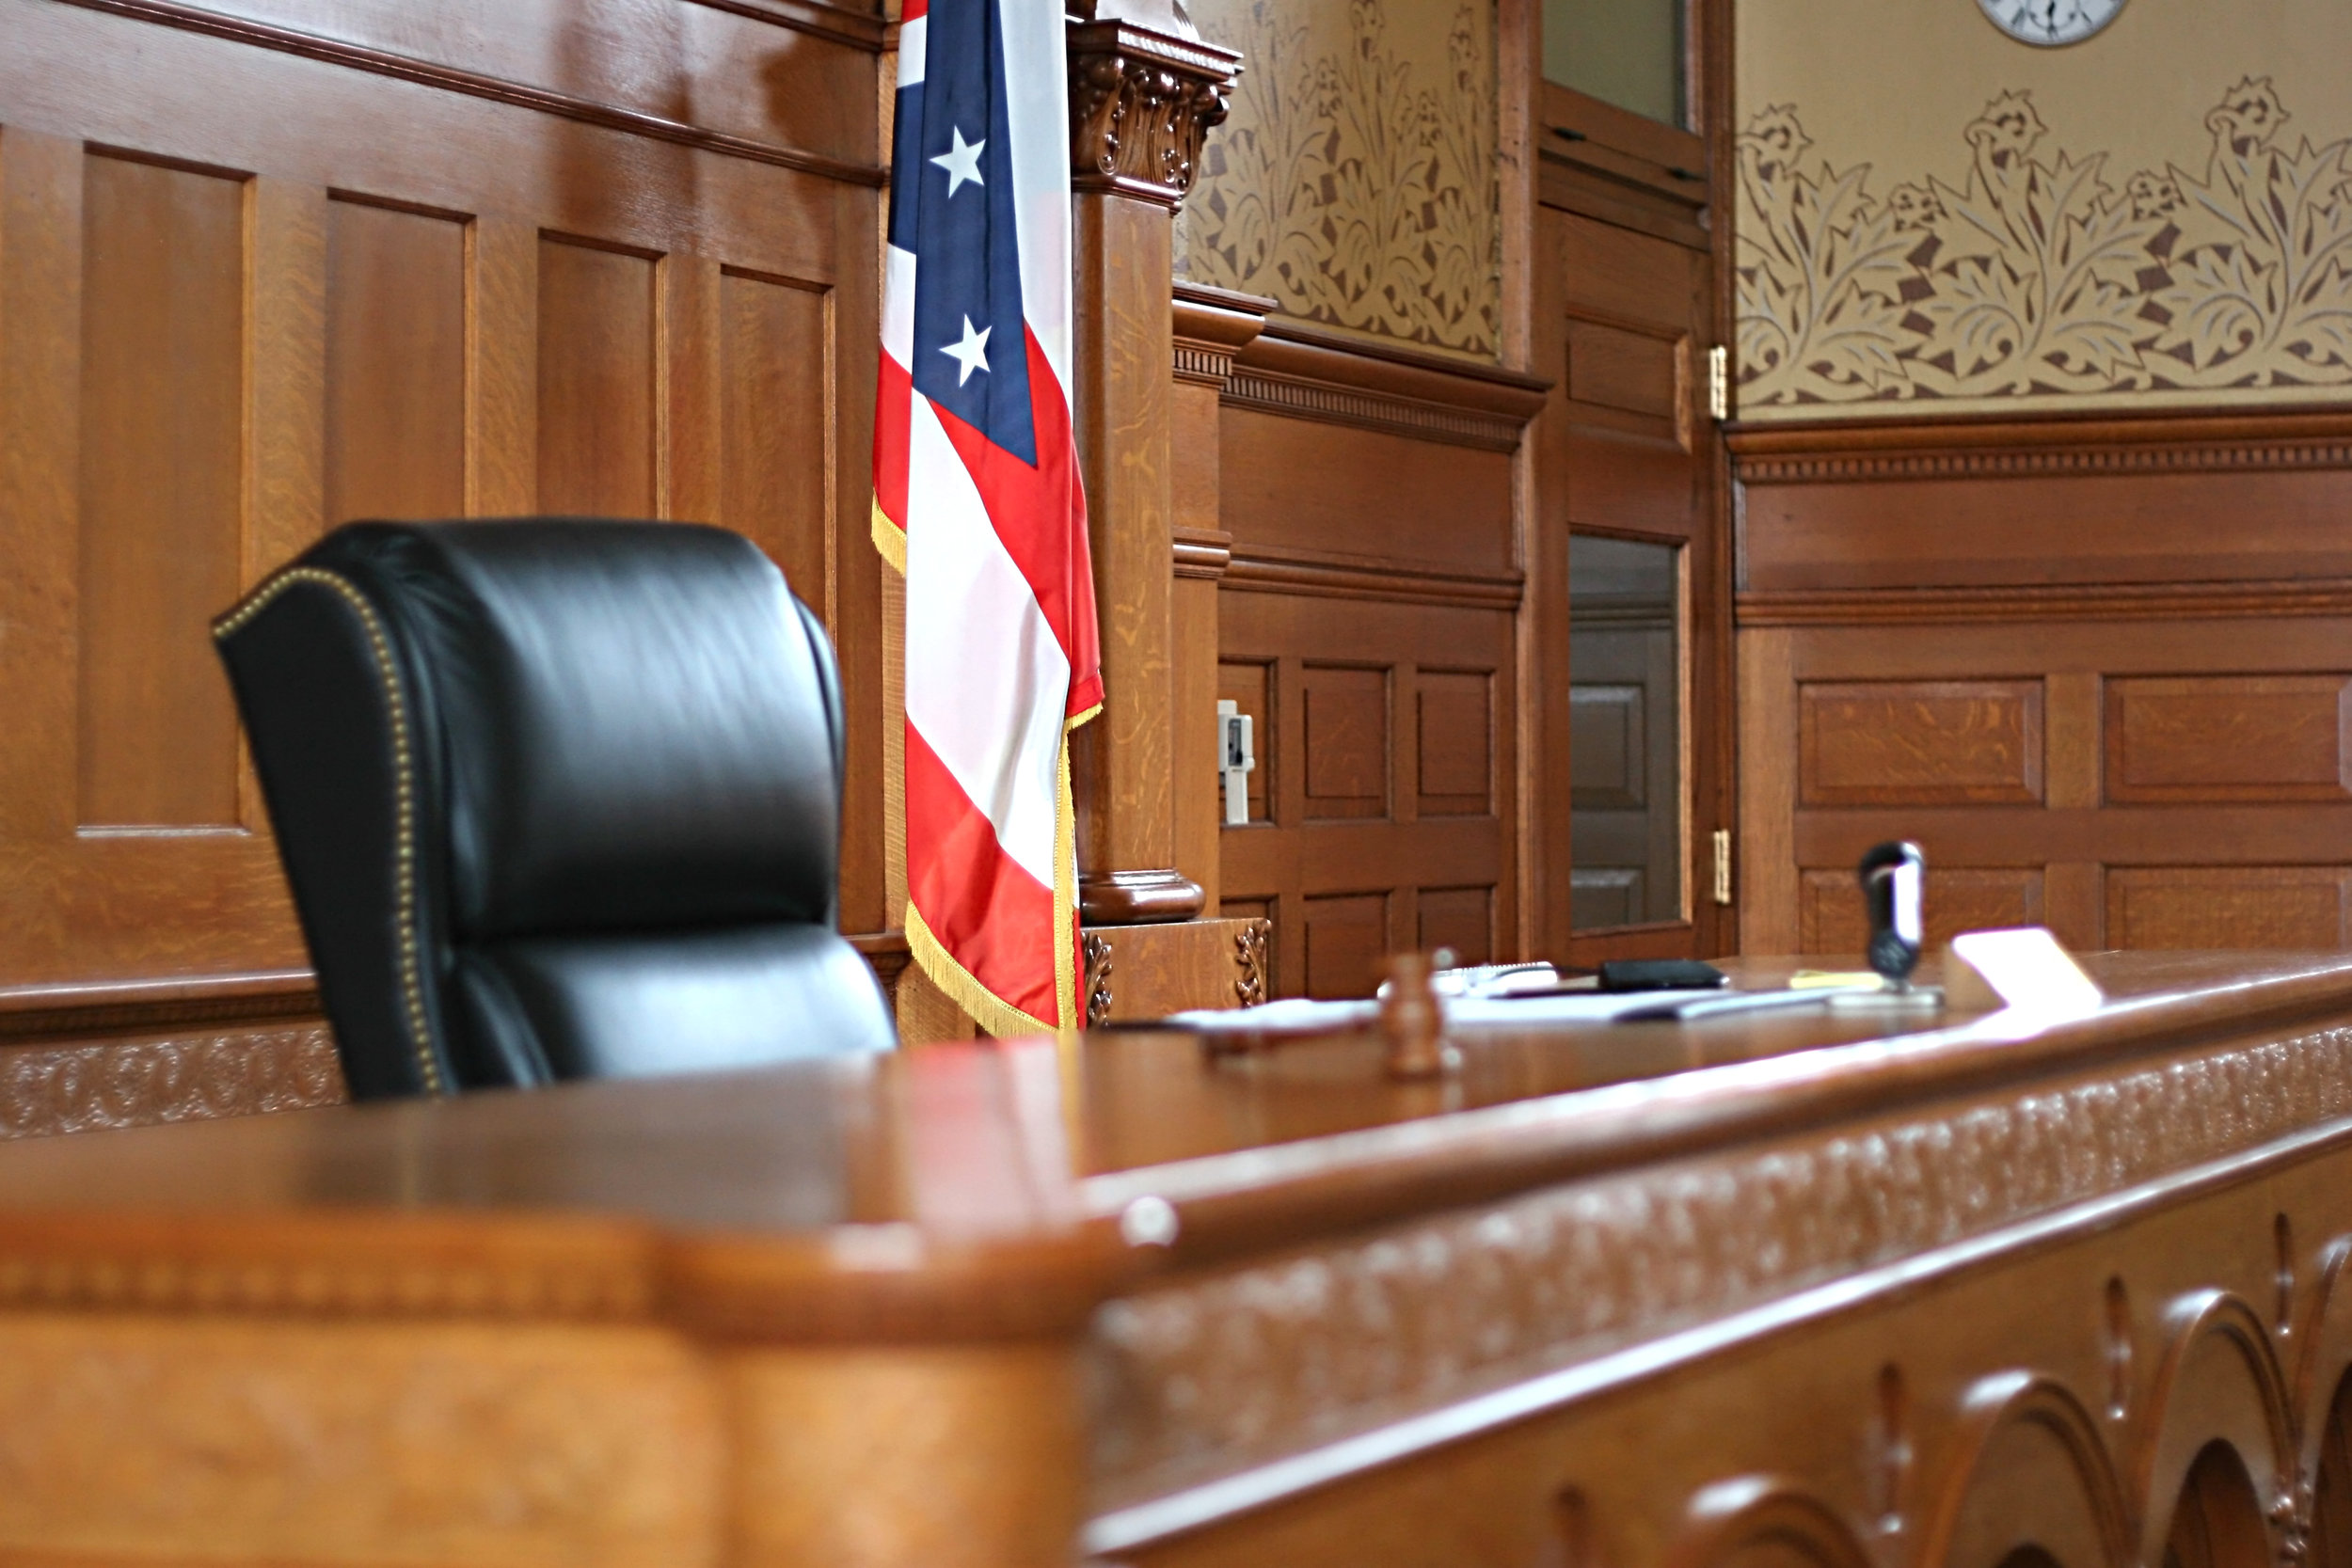 FRANKLIN COUNTY FAMILY DRUG COURT GETS $2 1M GRANT — The